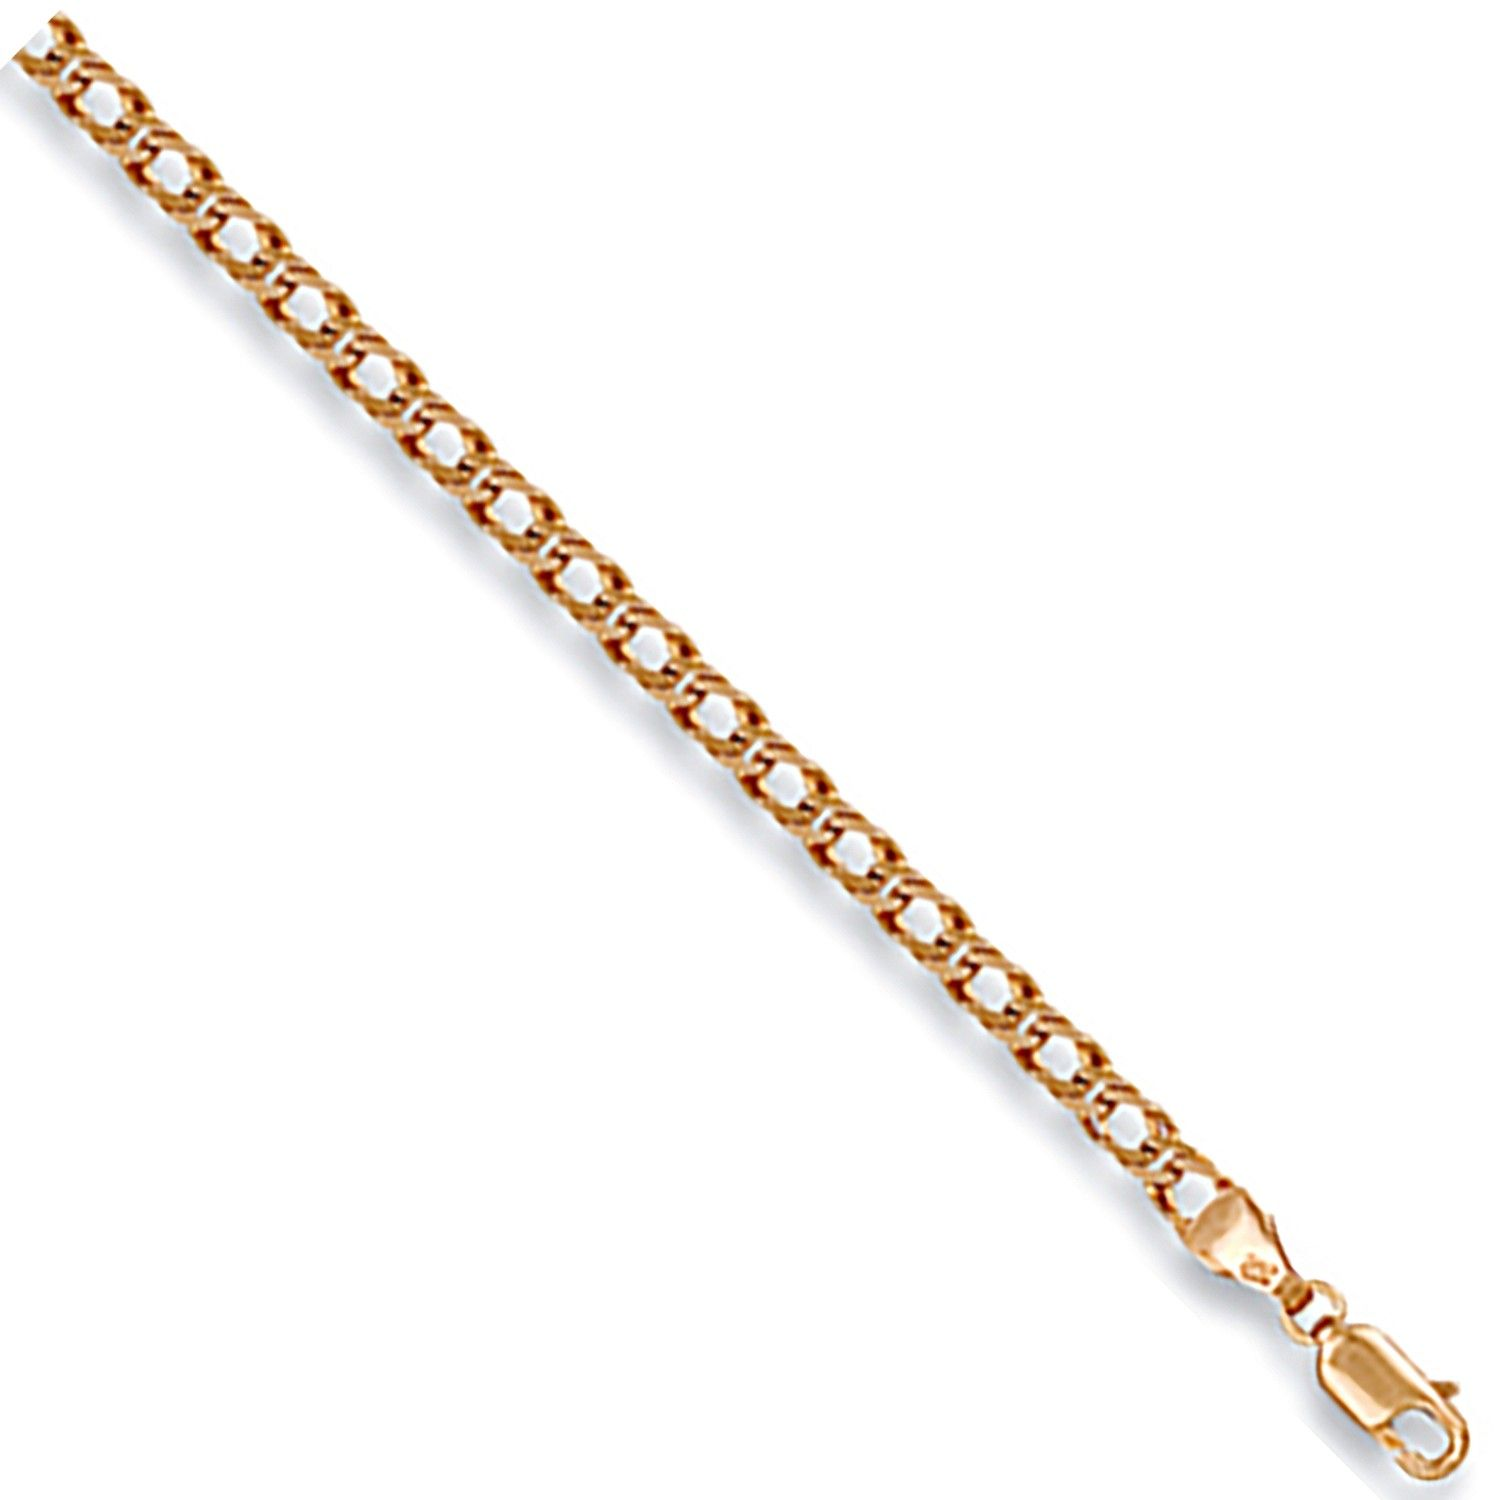 9ct Yellow Gold 3.5mm Curb Chain